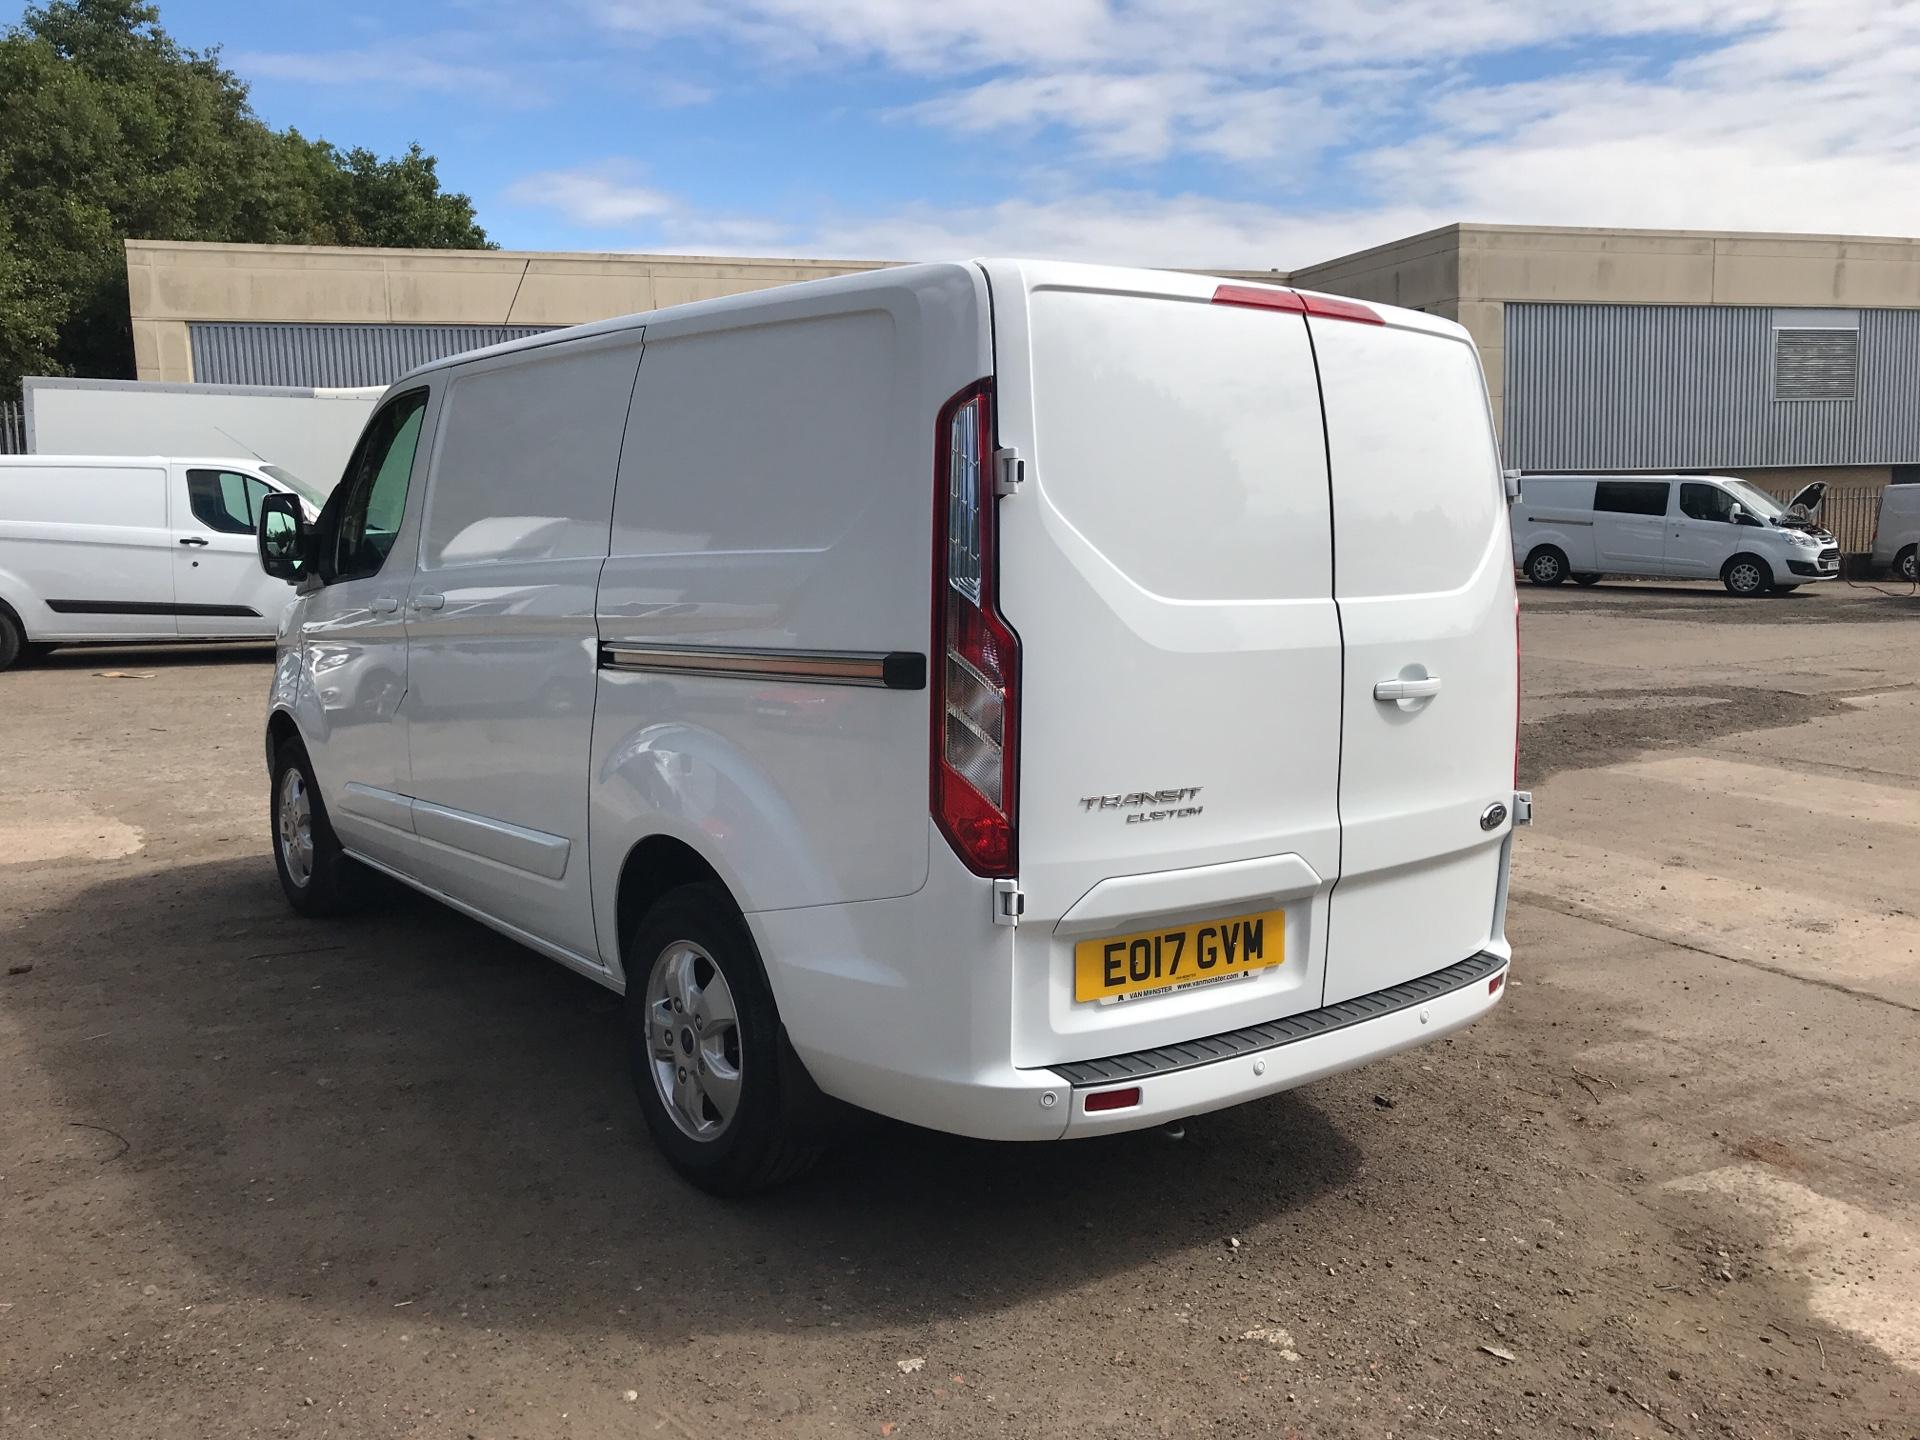 2017 Ford Transit Custom 270 L1 DIESEL FWD 2.0 TDCI 130PS LOW ROOF LIMITED EURO 6 (EO17GVM) Image 5